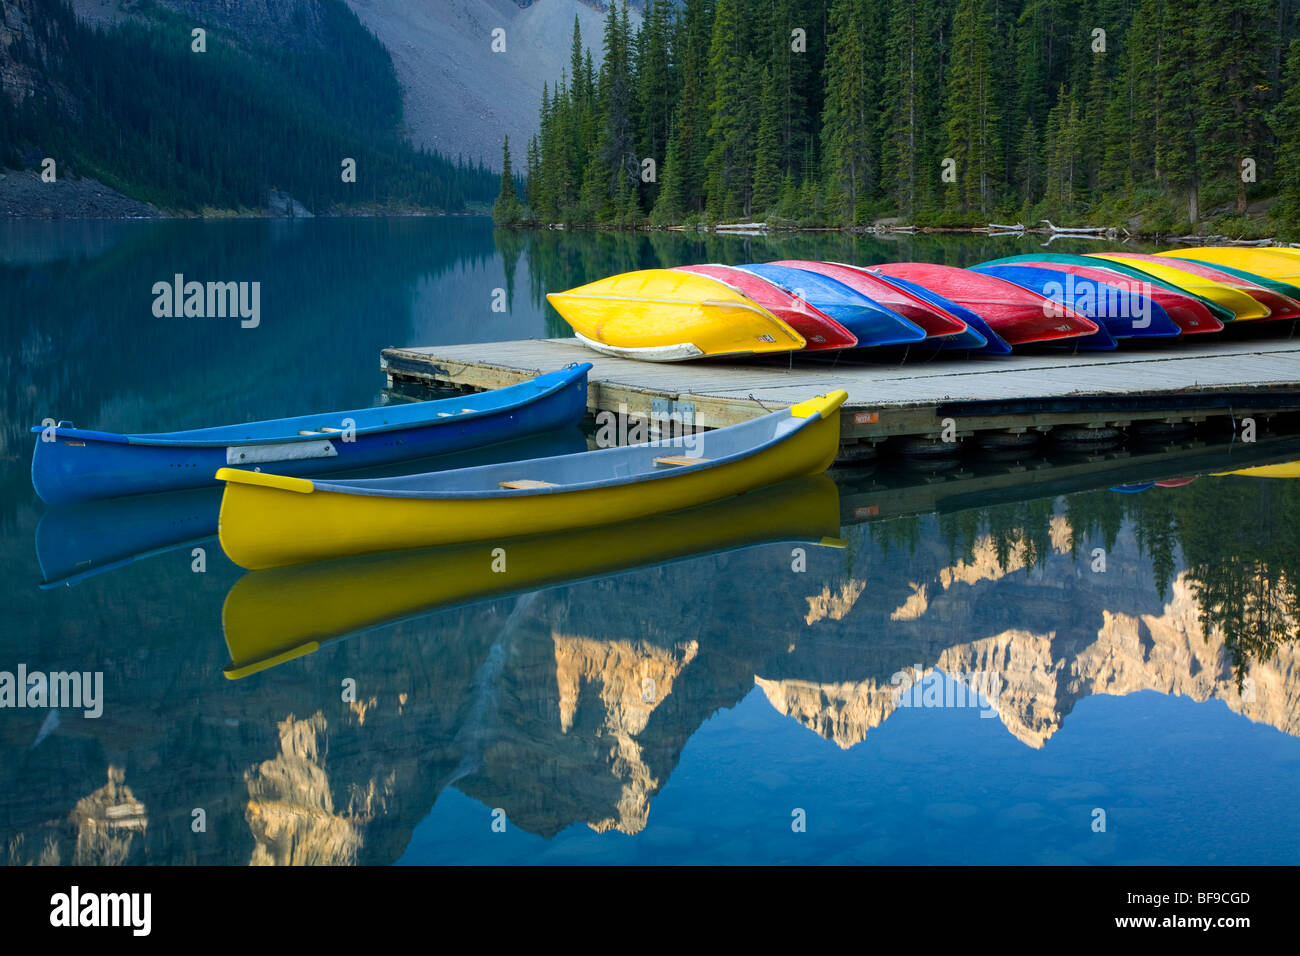 canoe dock, Moraine Lake, Banff National Park, Alberta, Canada - Stock Image